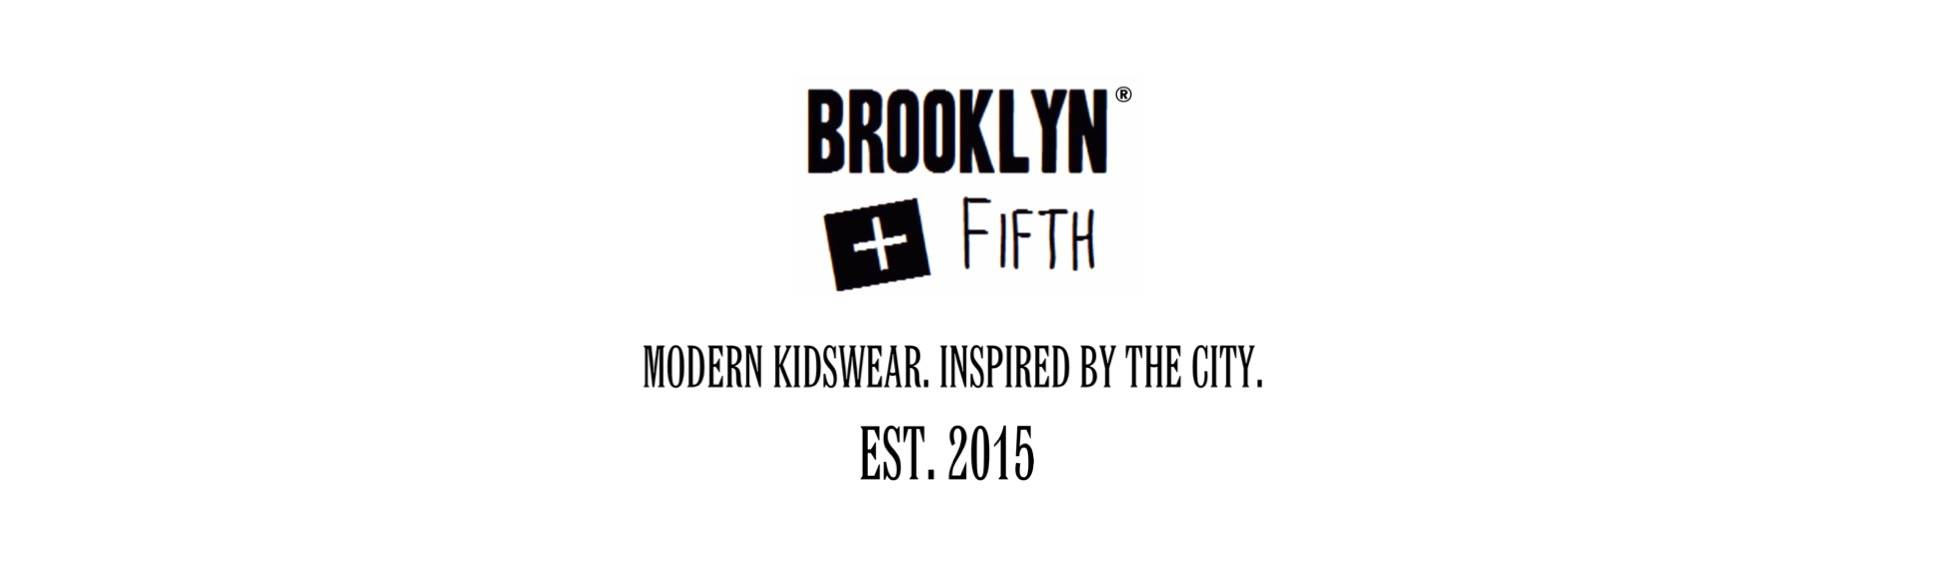 Brooklyn and Fifth Modern Kidswear